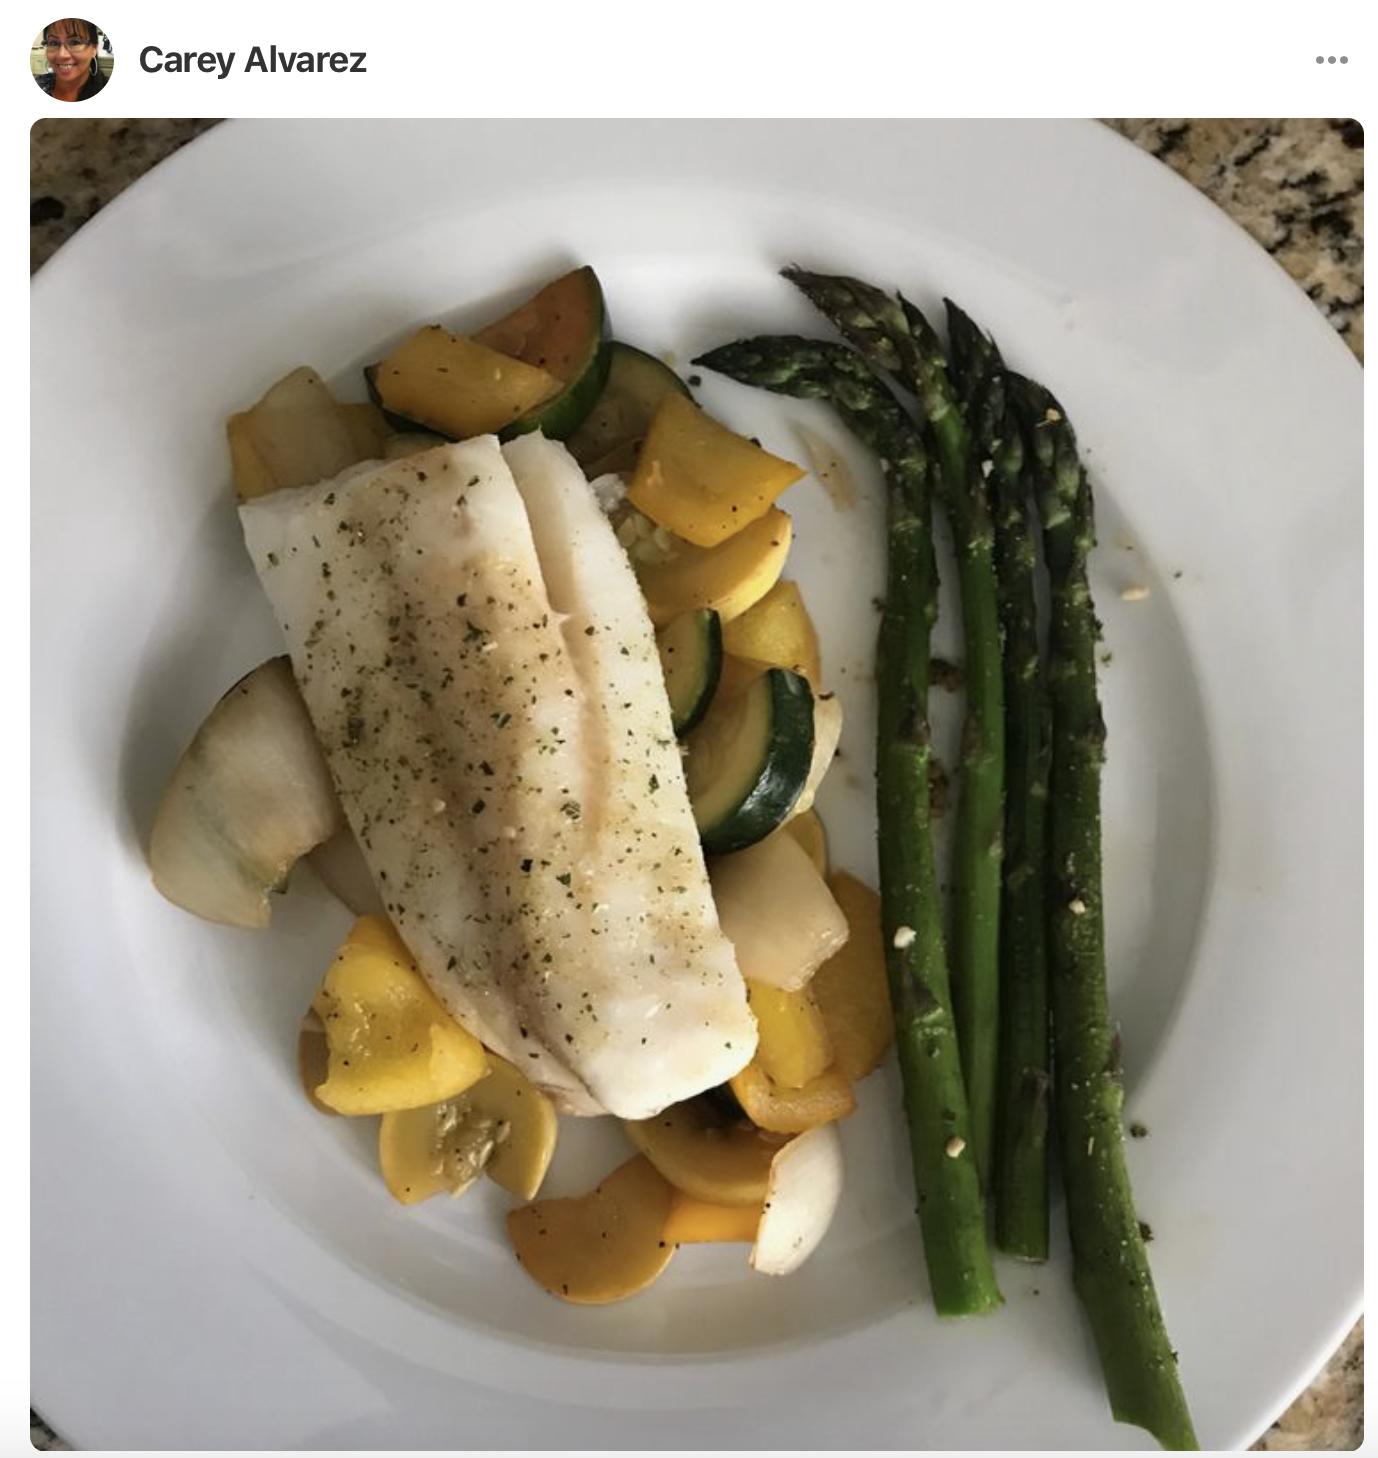 baked and seasoned cod recipe with roasted vegetables